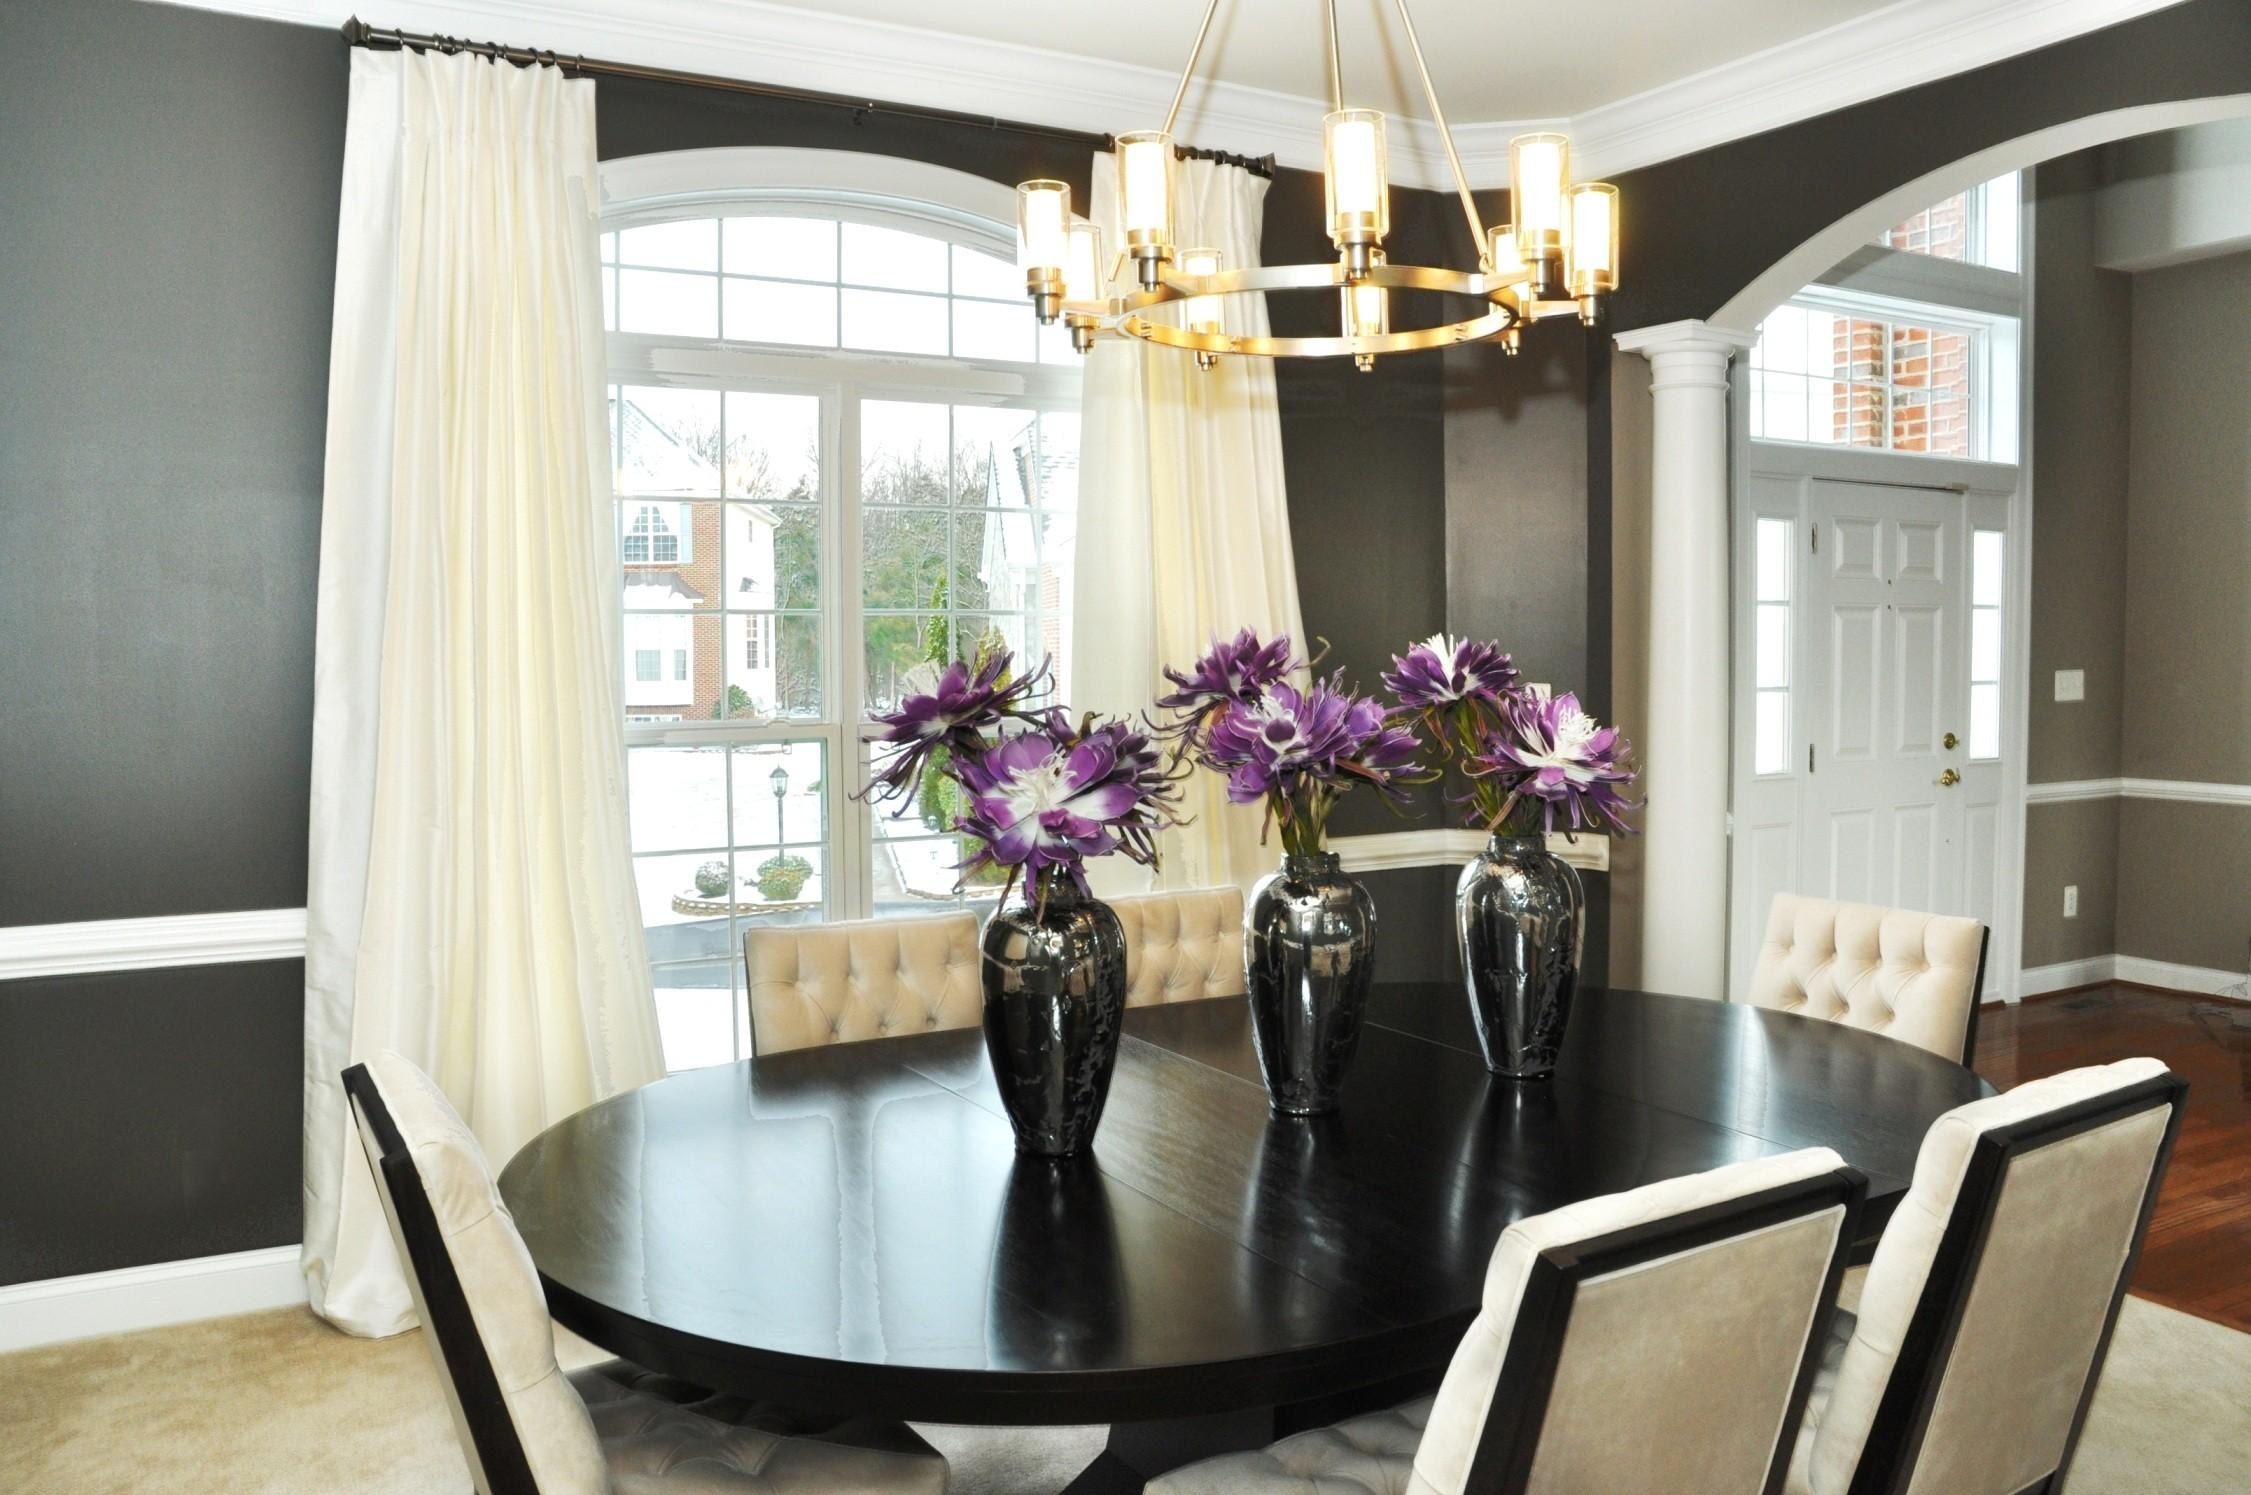 Big Dining Room Pendant Lighting Above Simple Wooden Table